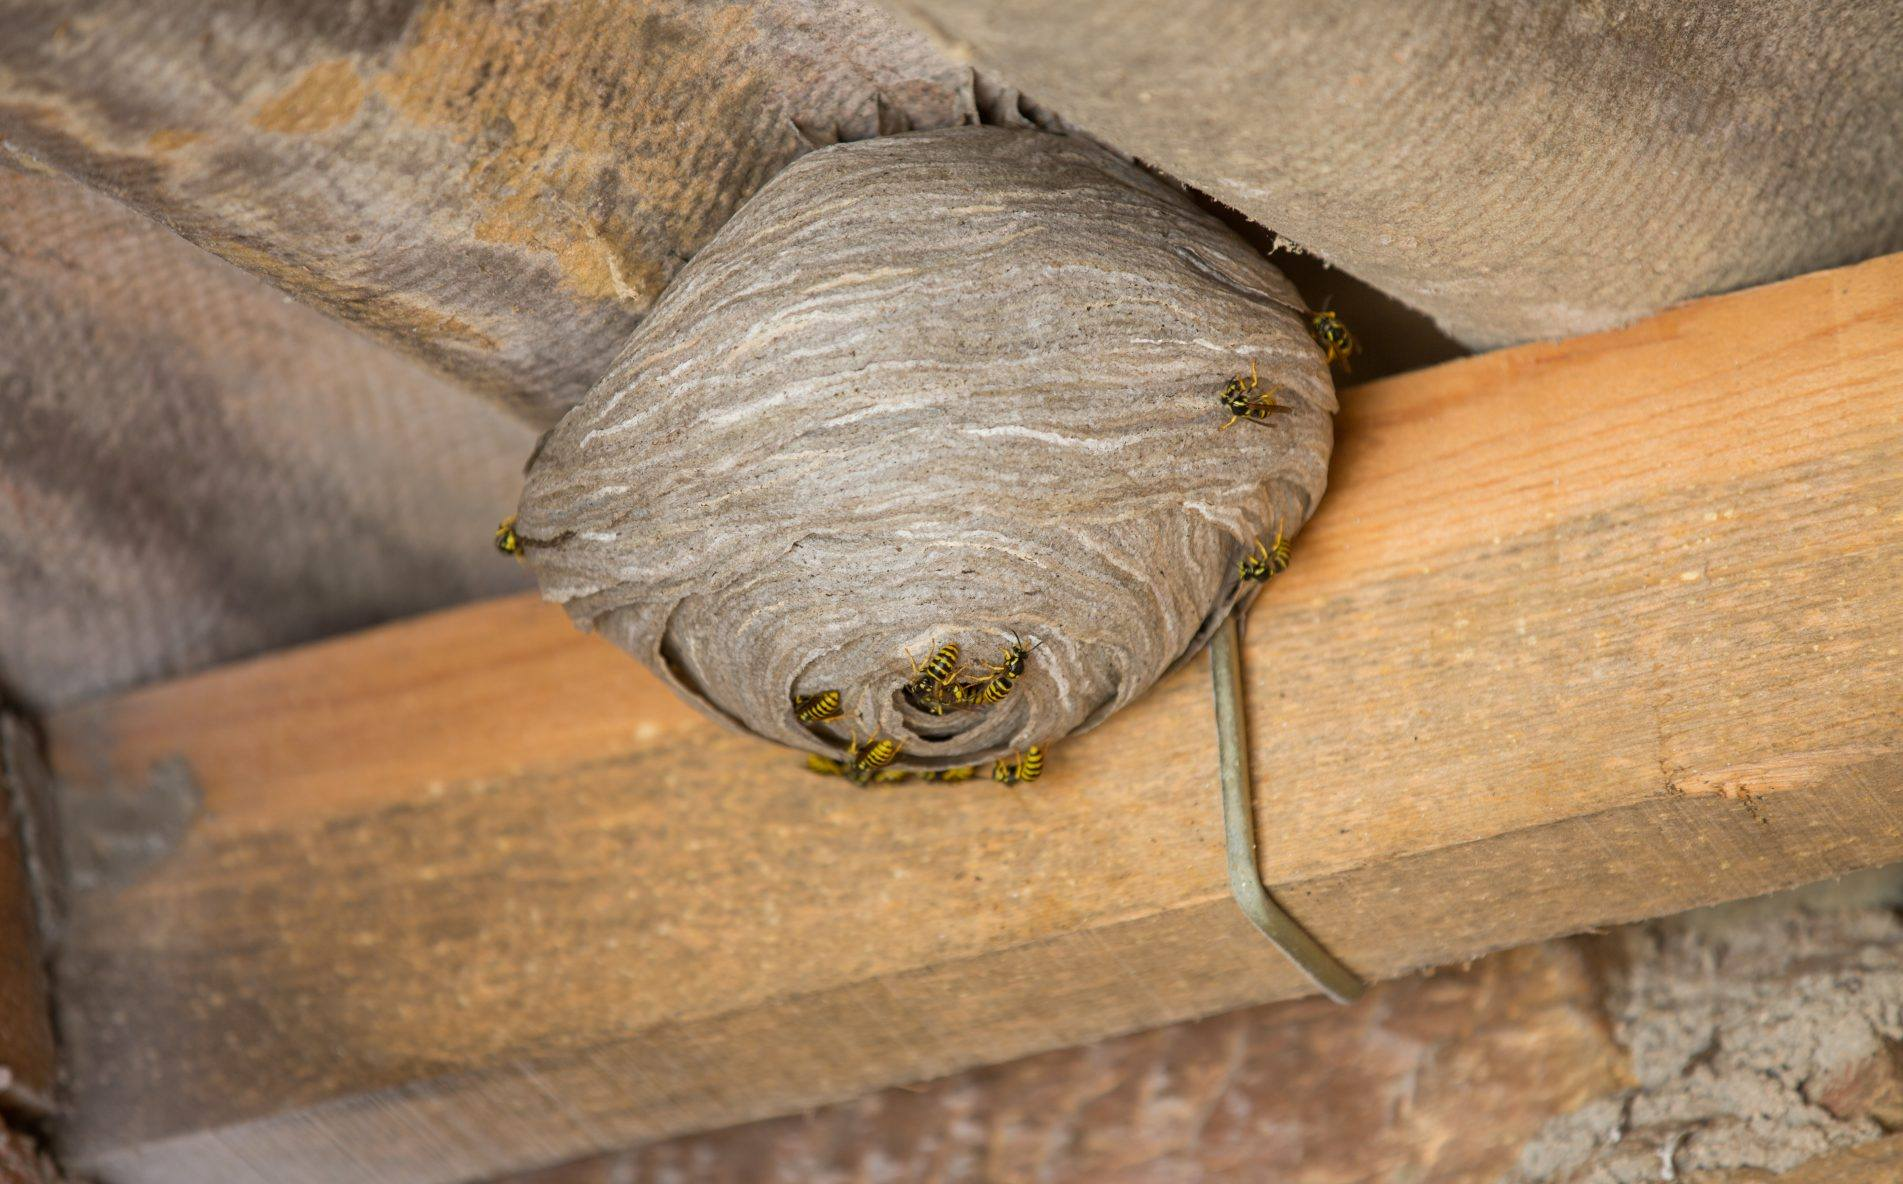 Wasp Nests Can Be Very Dangerous